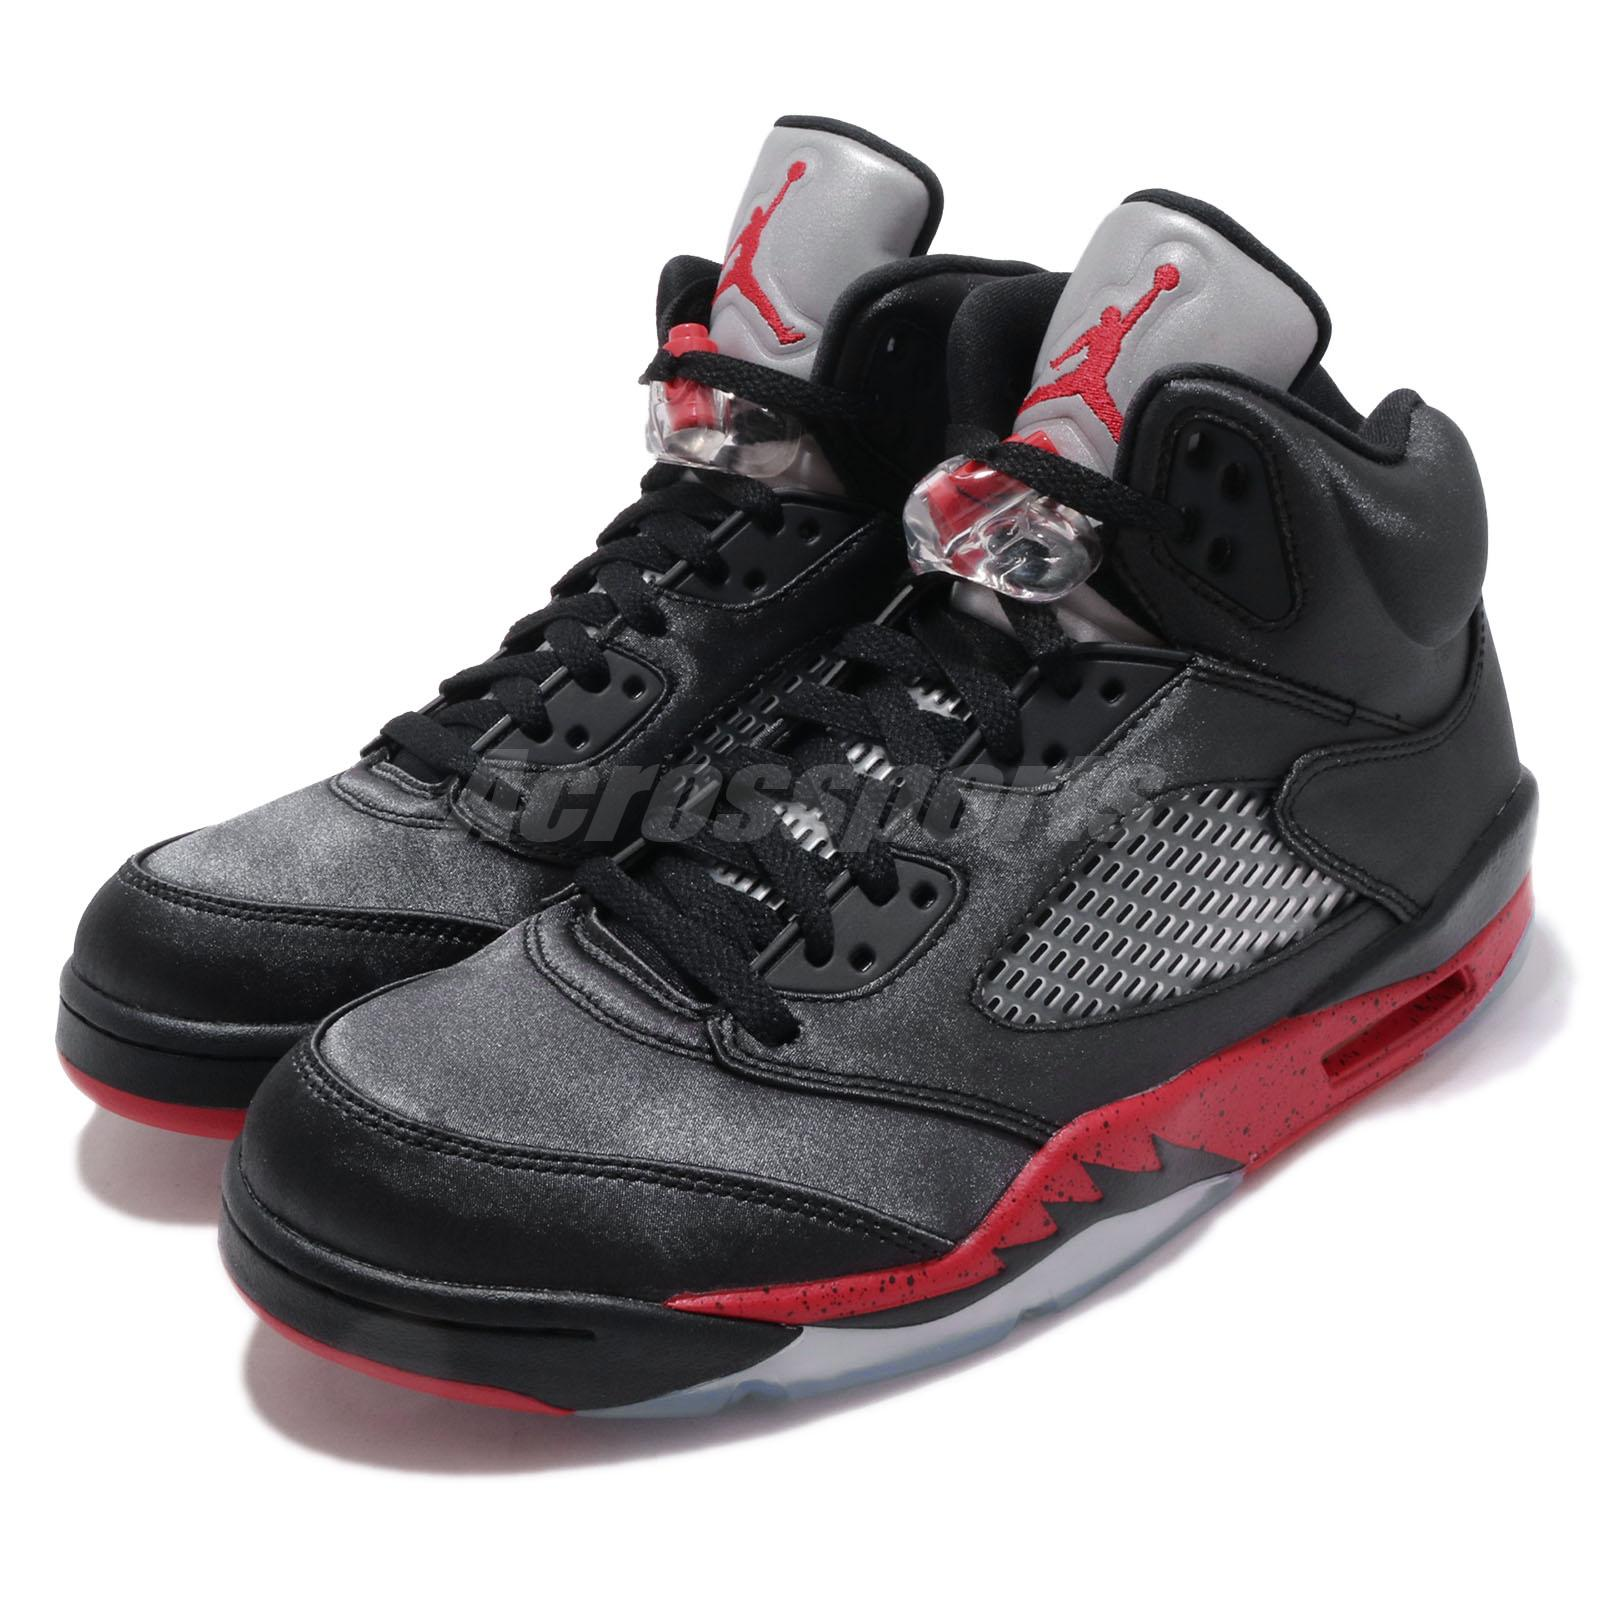 wholesale dealer 9a0de 81e07 Details about Nike Air Jordan 5 Retro V AJ5 Satin Bred Black Red Men Shoes  Sneakers 136027-006